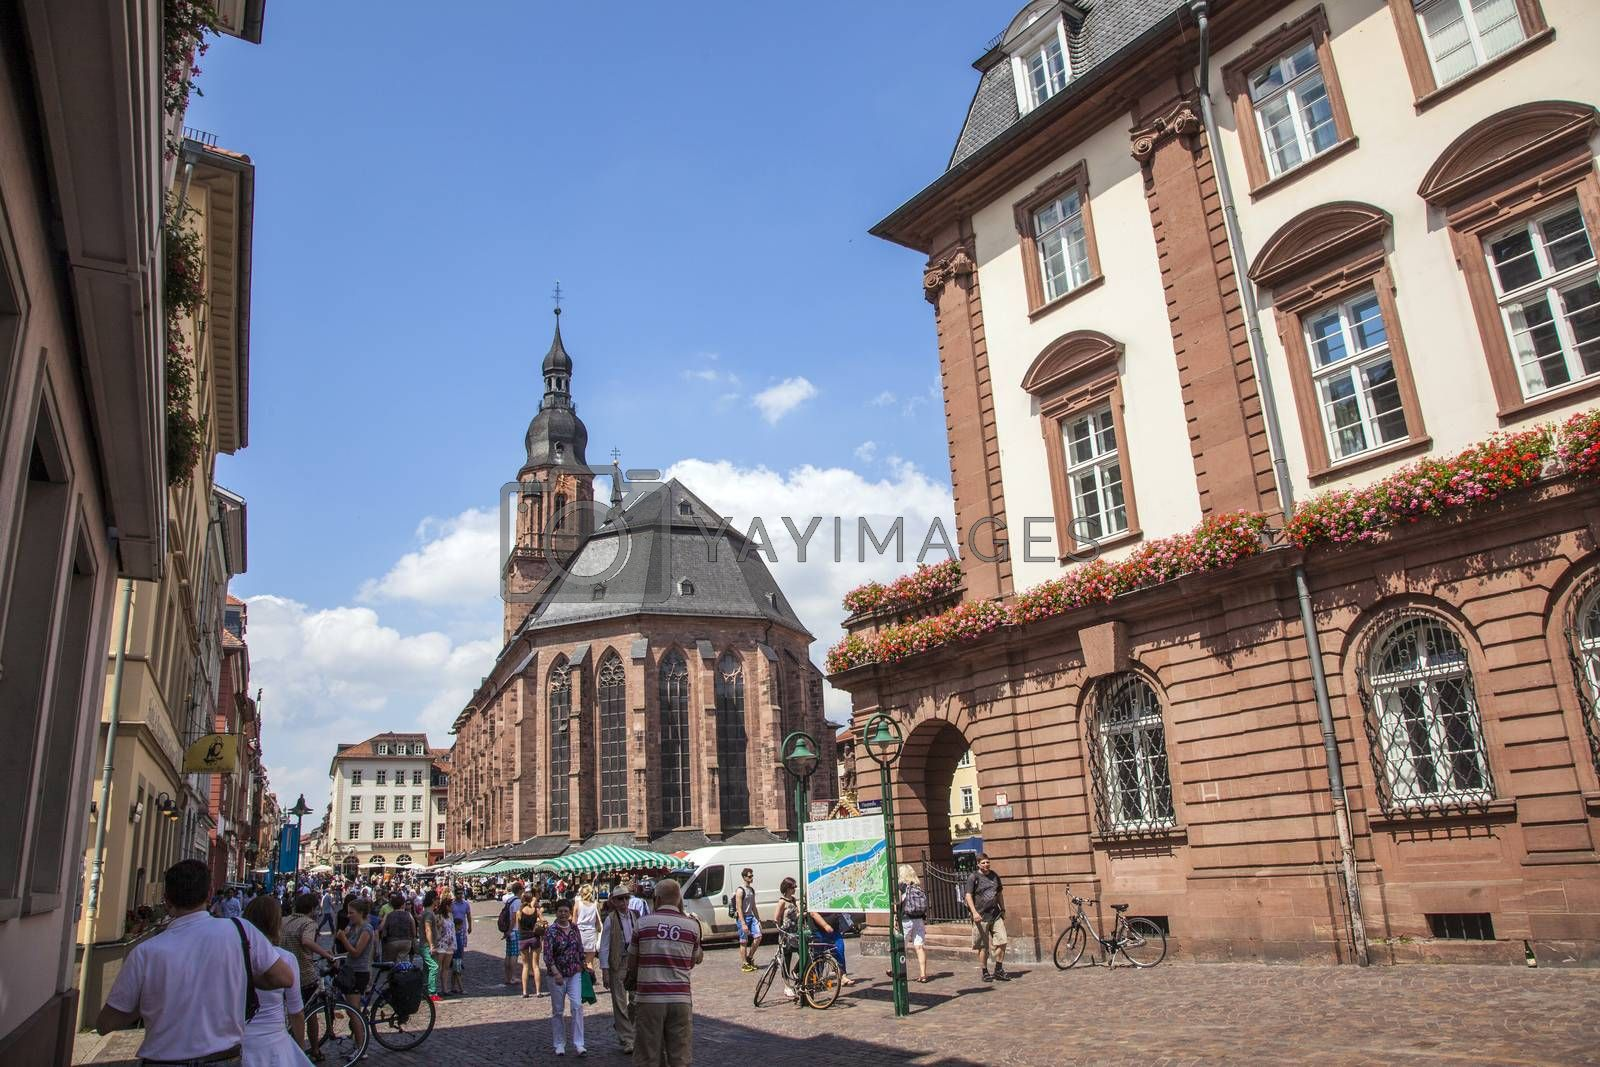 HEIDELBERG, GERMANY - JULY 6, 2013: Church of the Holy Spirit in Heidelberg, Germany . The Church of the Holy Spirit is first mentioned in 1239.